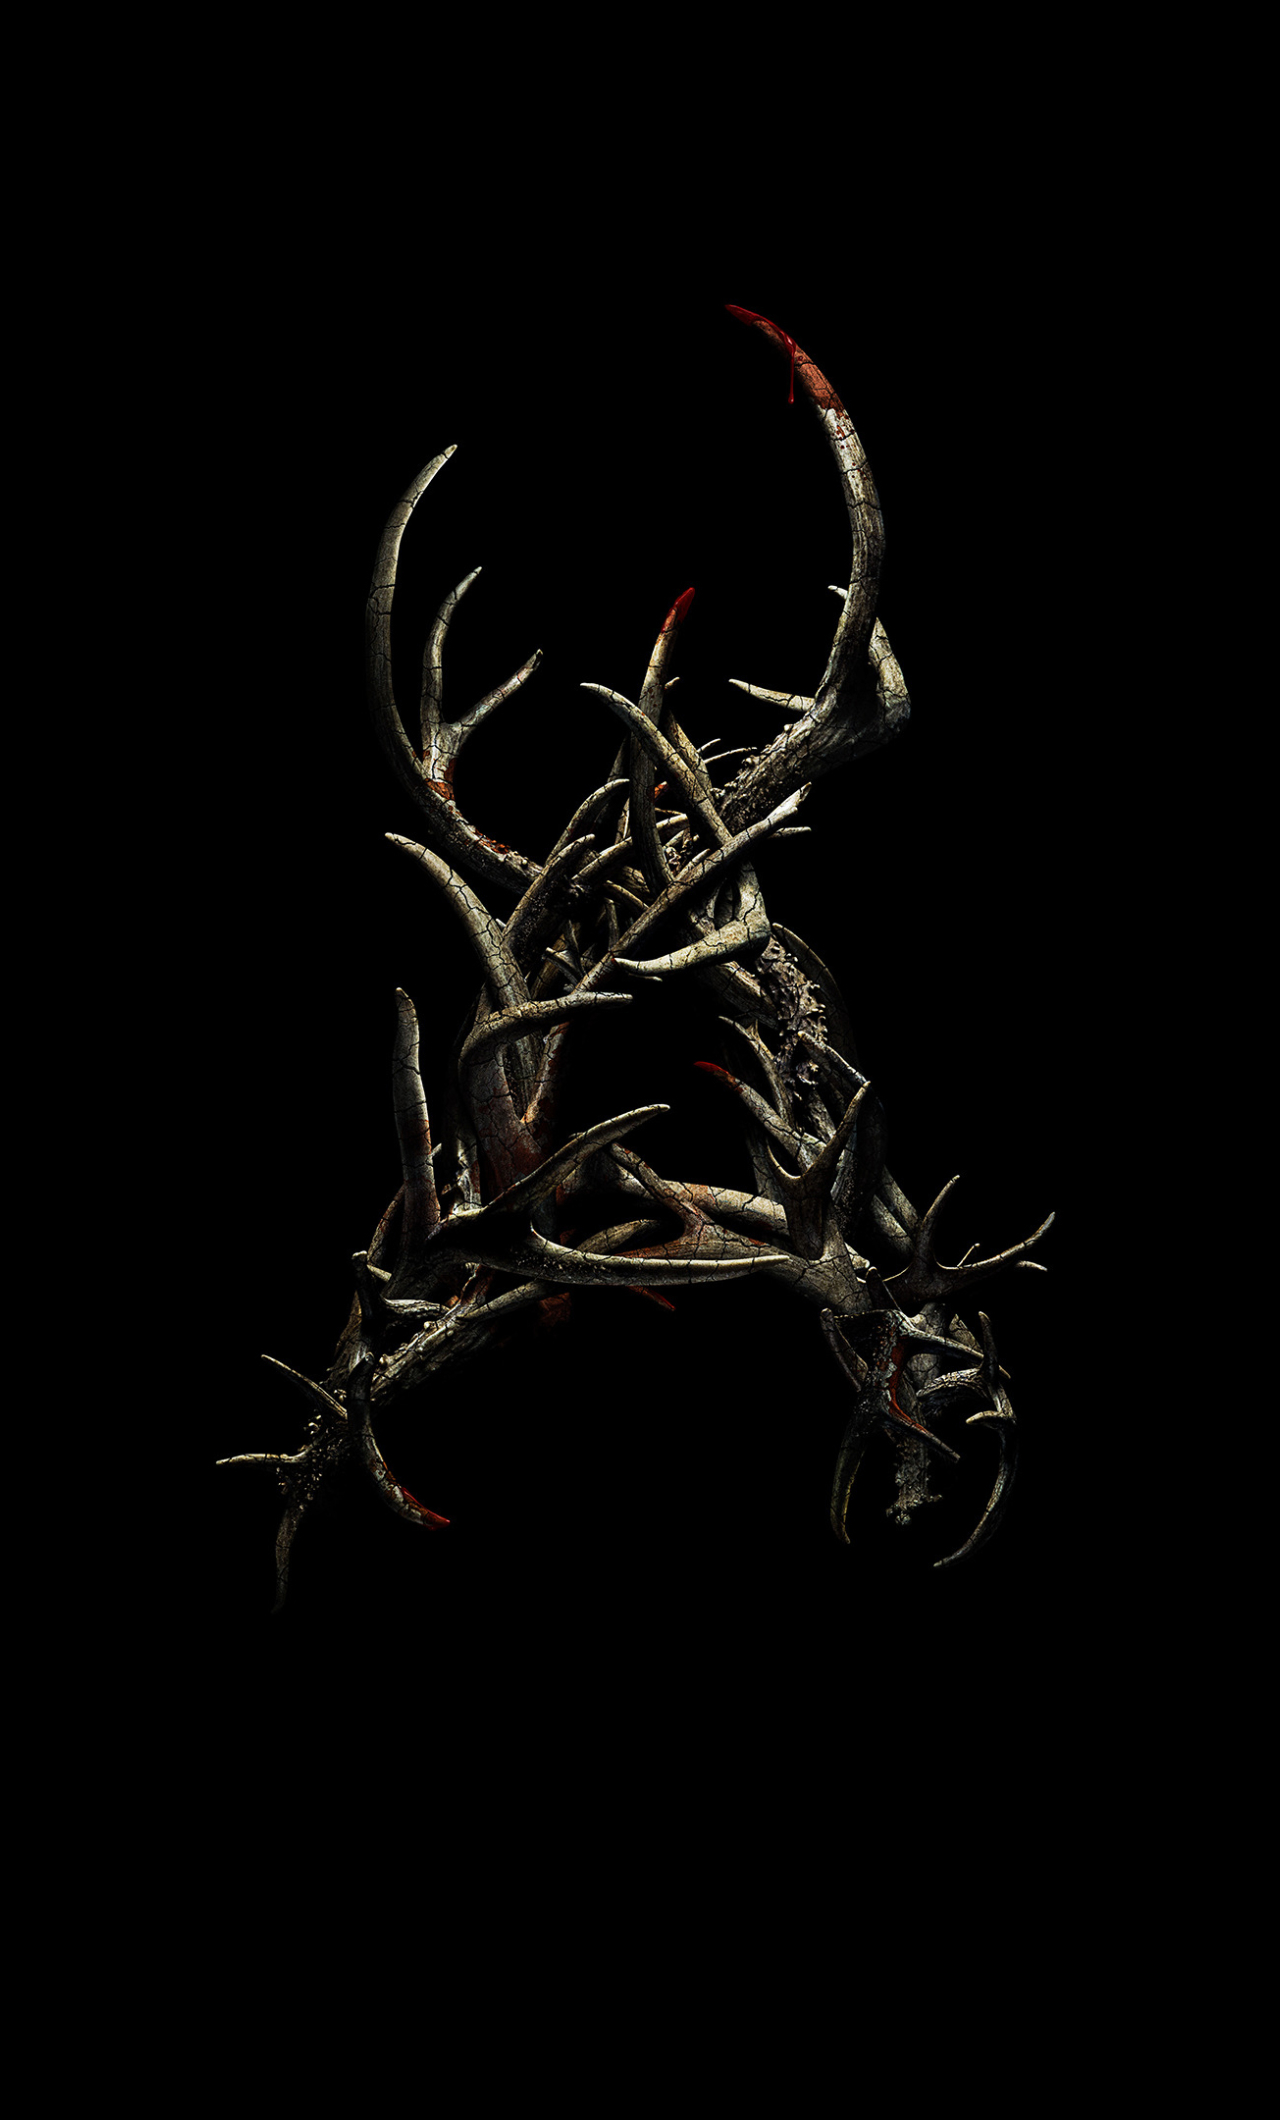 Antlers Movie Wallpaper in 1280x2120 Resolution